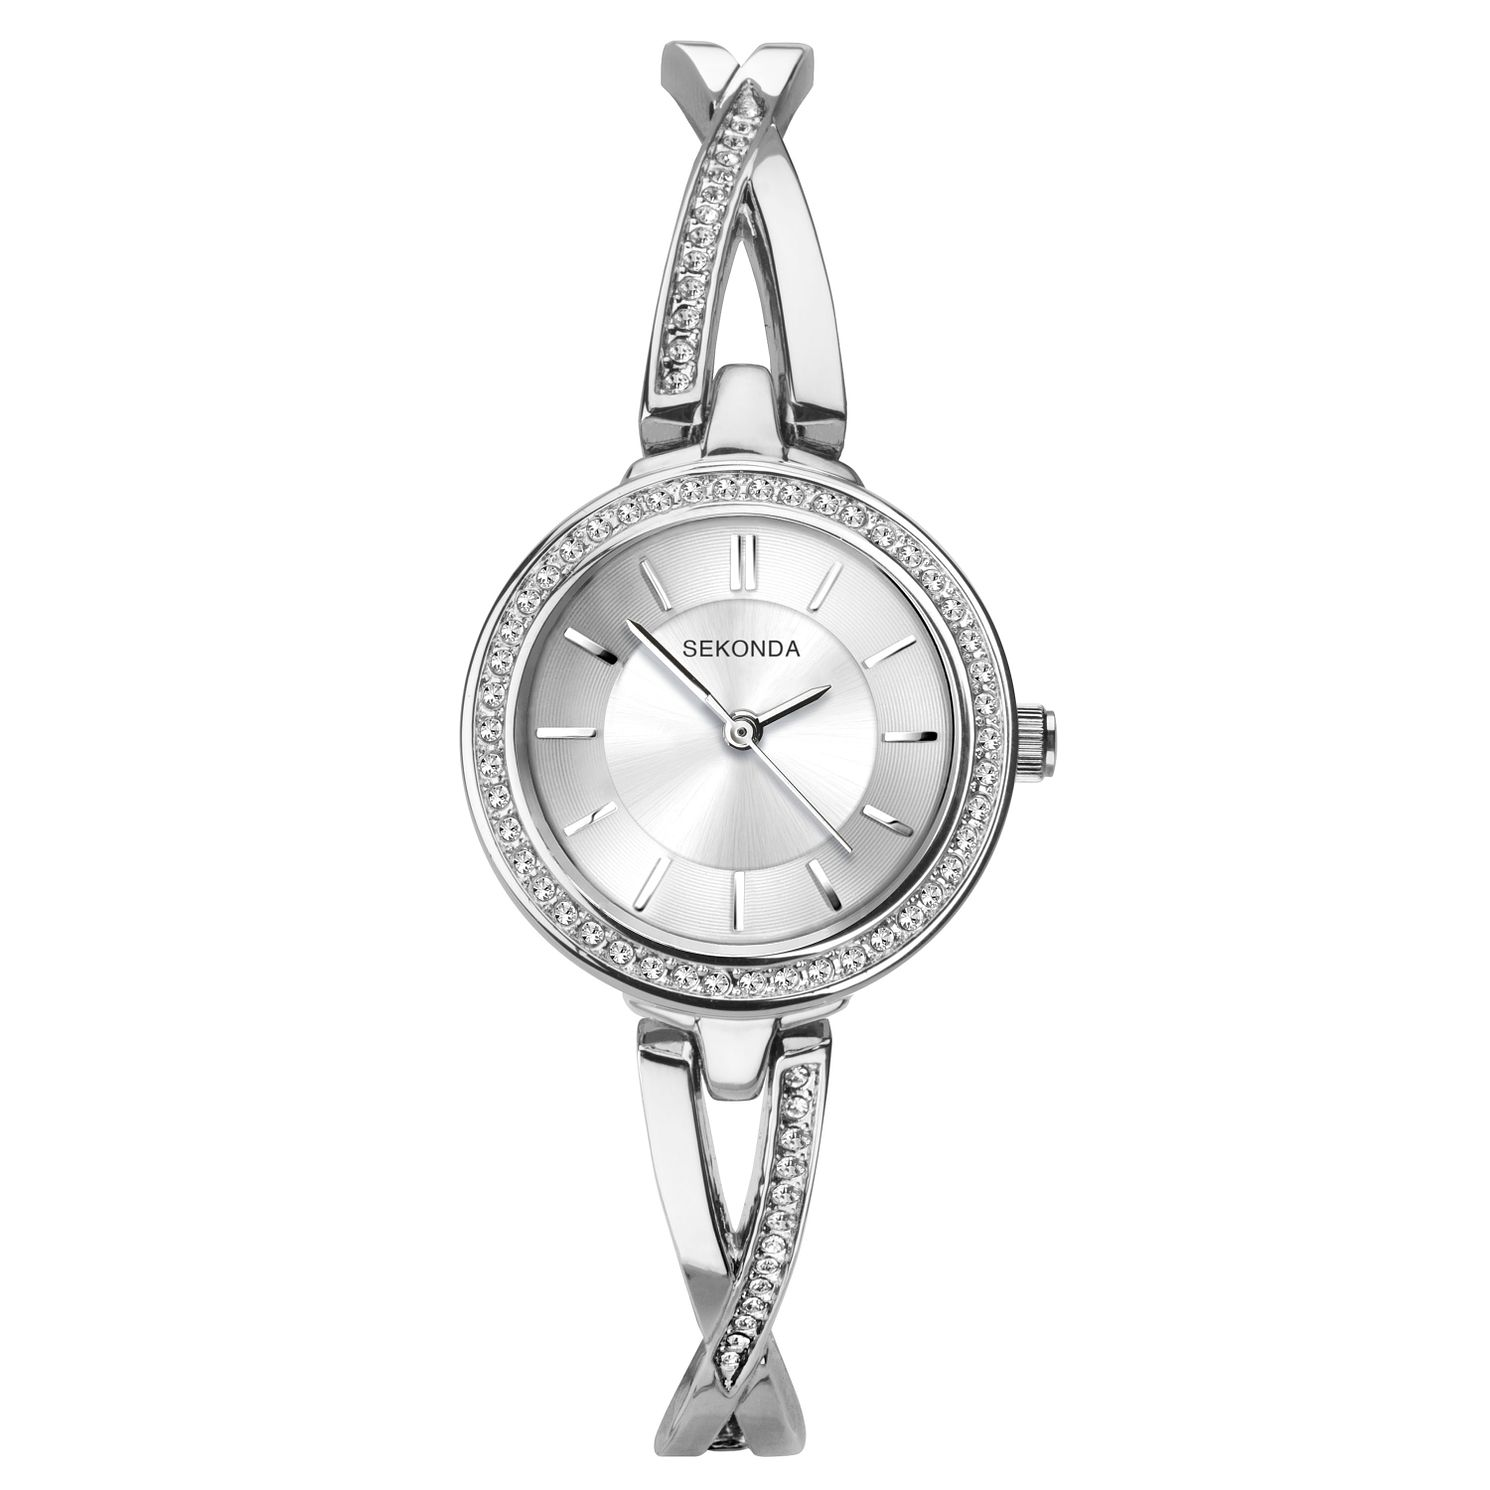 Sekonda Ladies' Silver Tone Bangle Bracelet Watch - Product number 9794298